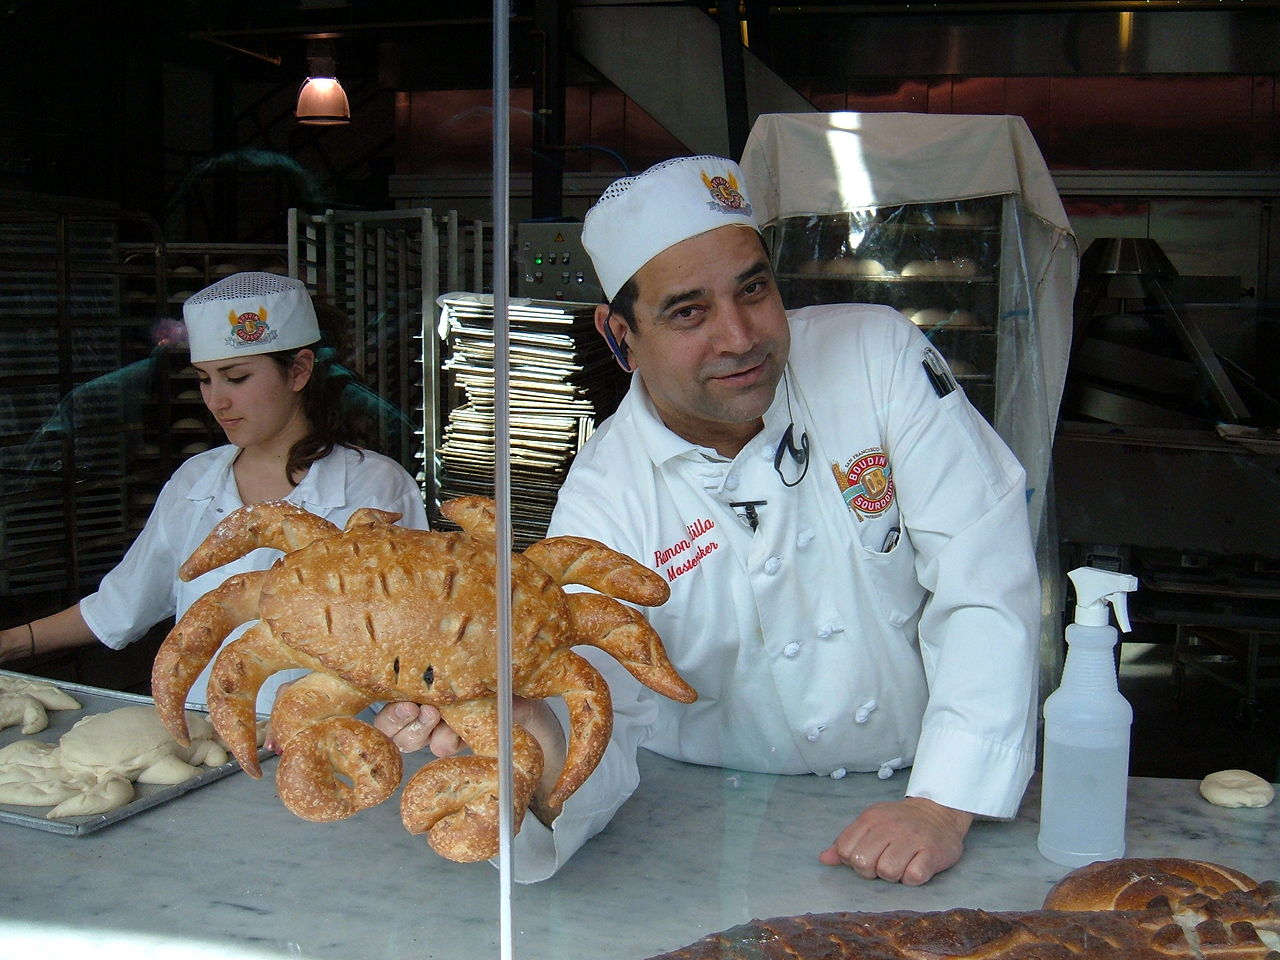 FileBoudin Bakery Fishermans Wharf baker showing off crab 1JPG  Wikimedia Commons